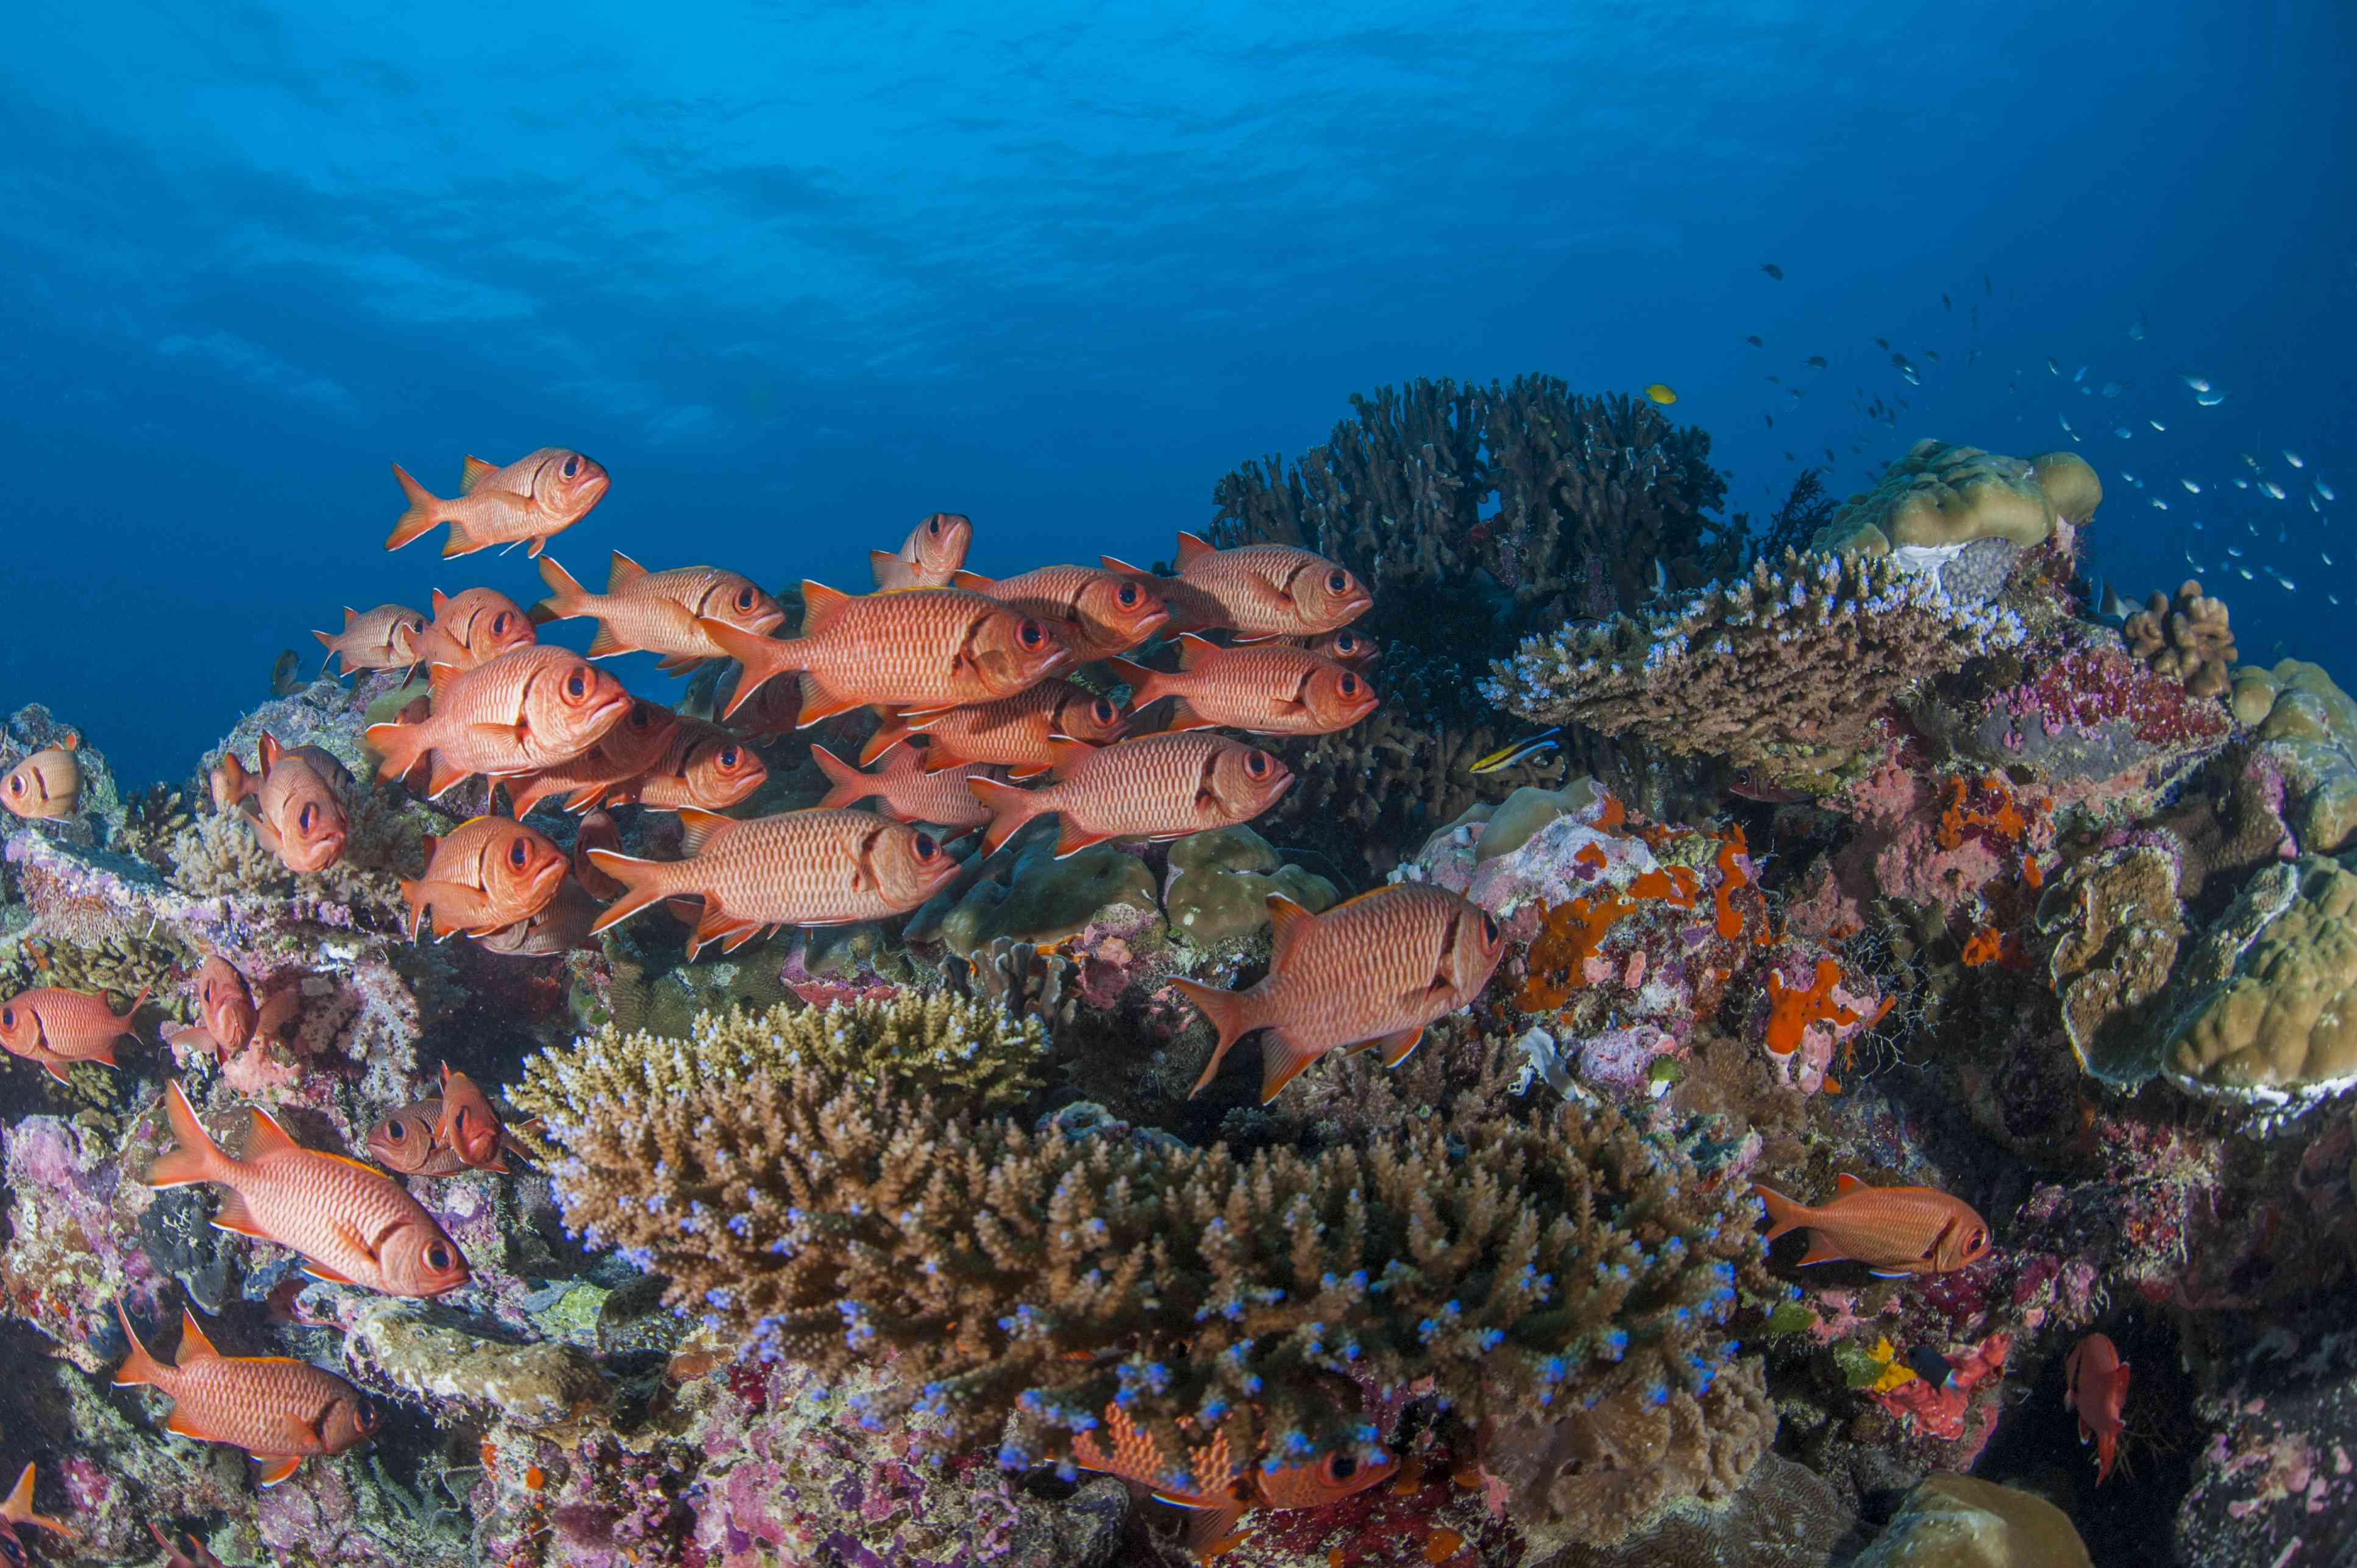 a school of orange squirrel fish on a colorful coral reef in Palau